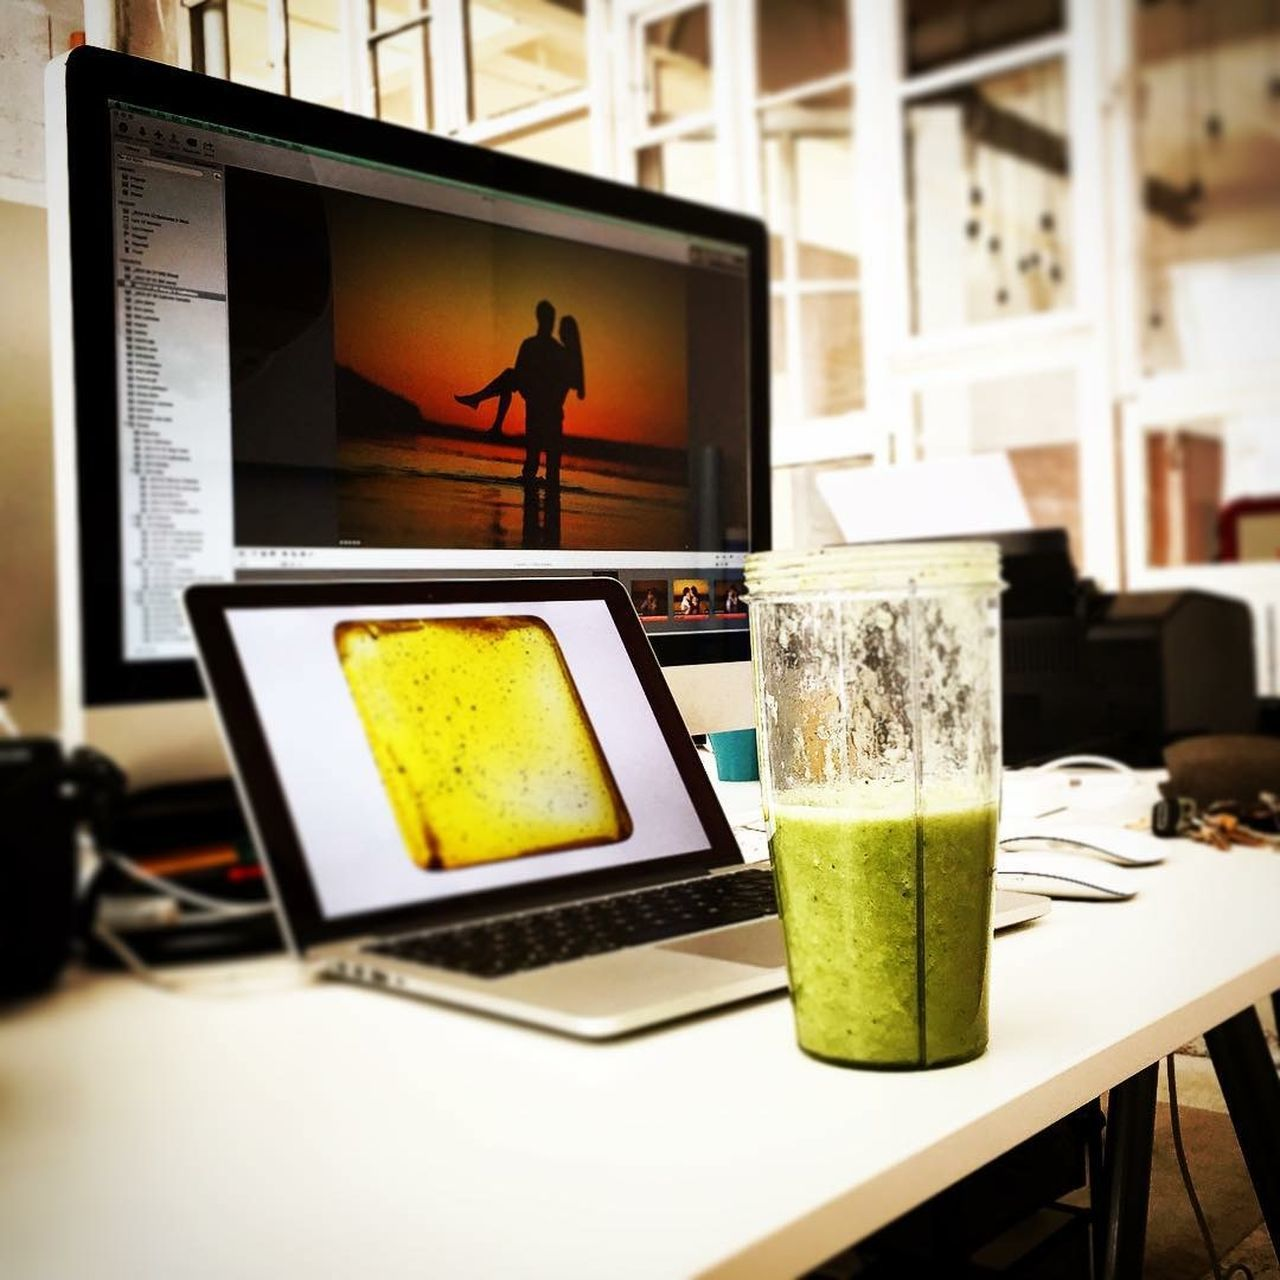 Desks From Above Working IMac27 MacBook Pro Office Photographer First Eyeem Photo Couples❤❤❤ Couple Love Work Place Raw Vegan Food Raw Coctail Spinach Banana Apple Oldwindow Window Wall Photostudio Photographer Office Energydrink Work Table Daydreaming I Love My Work